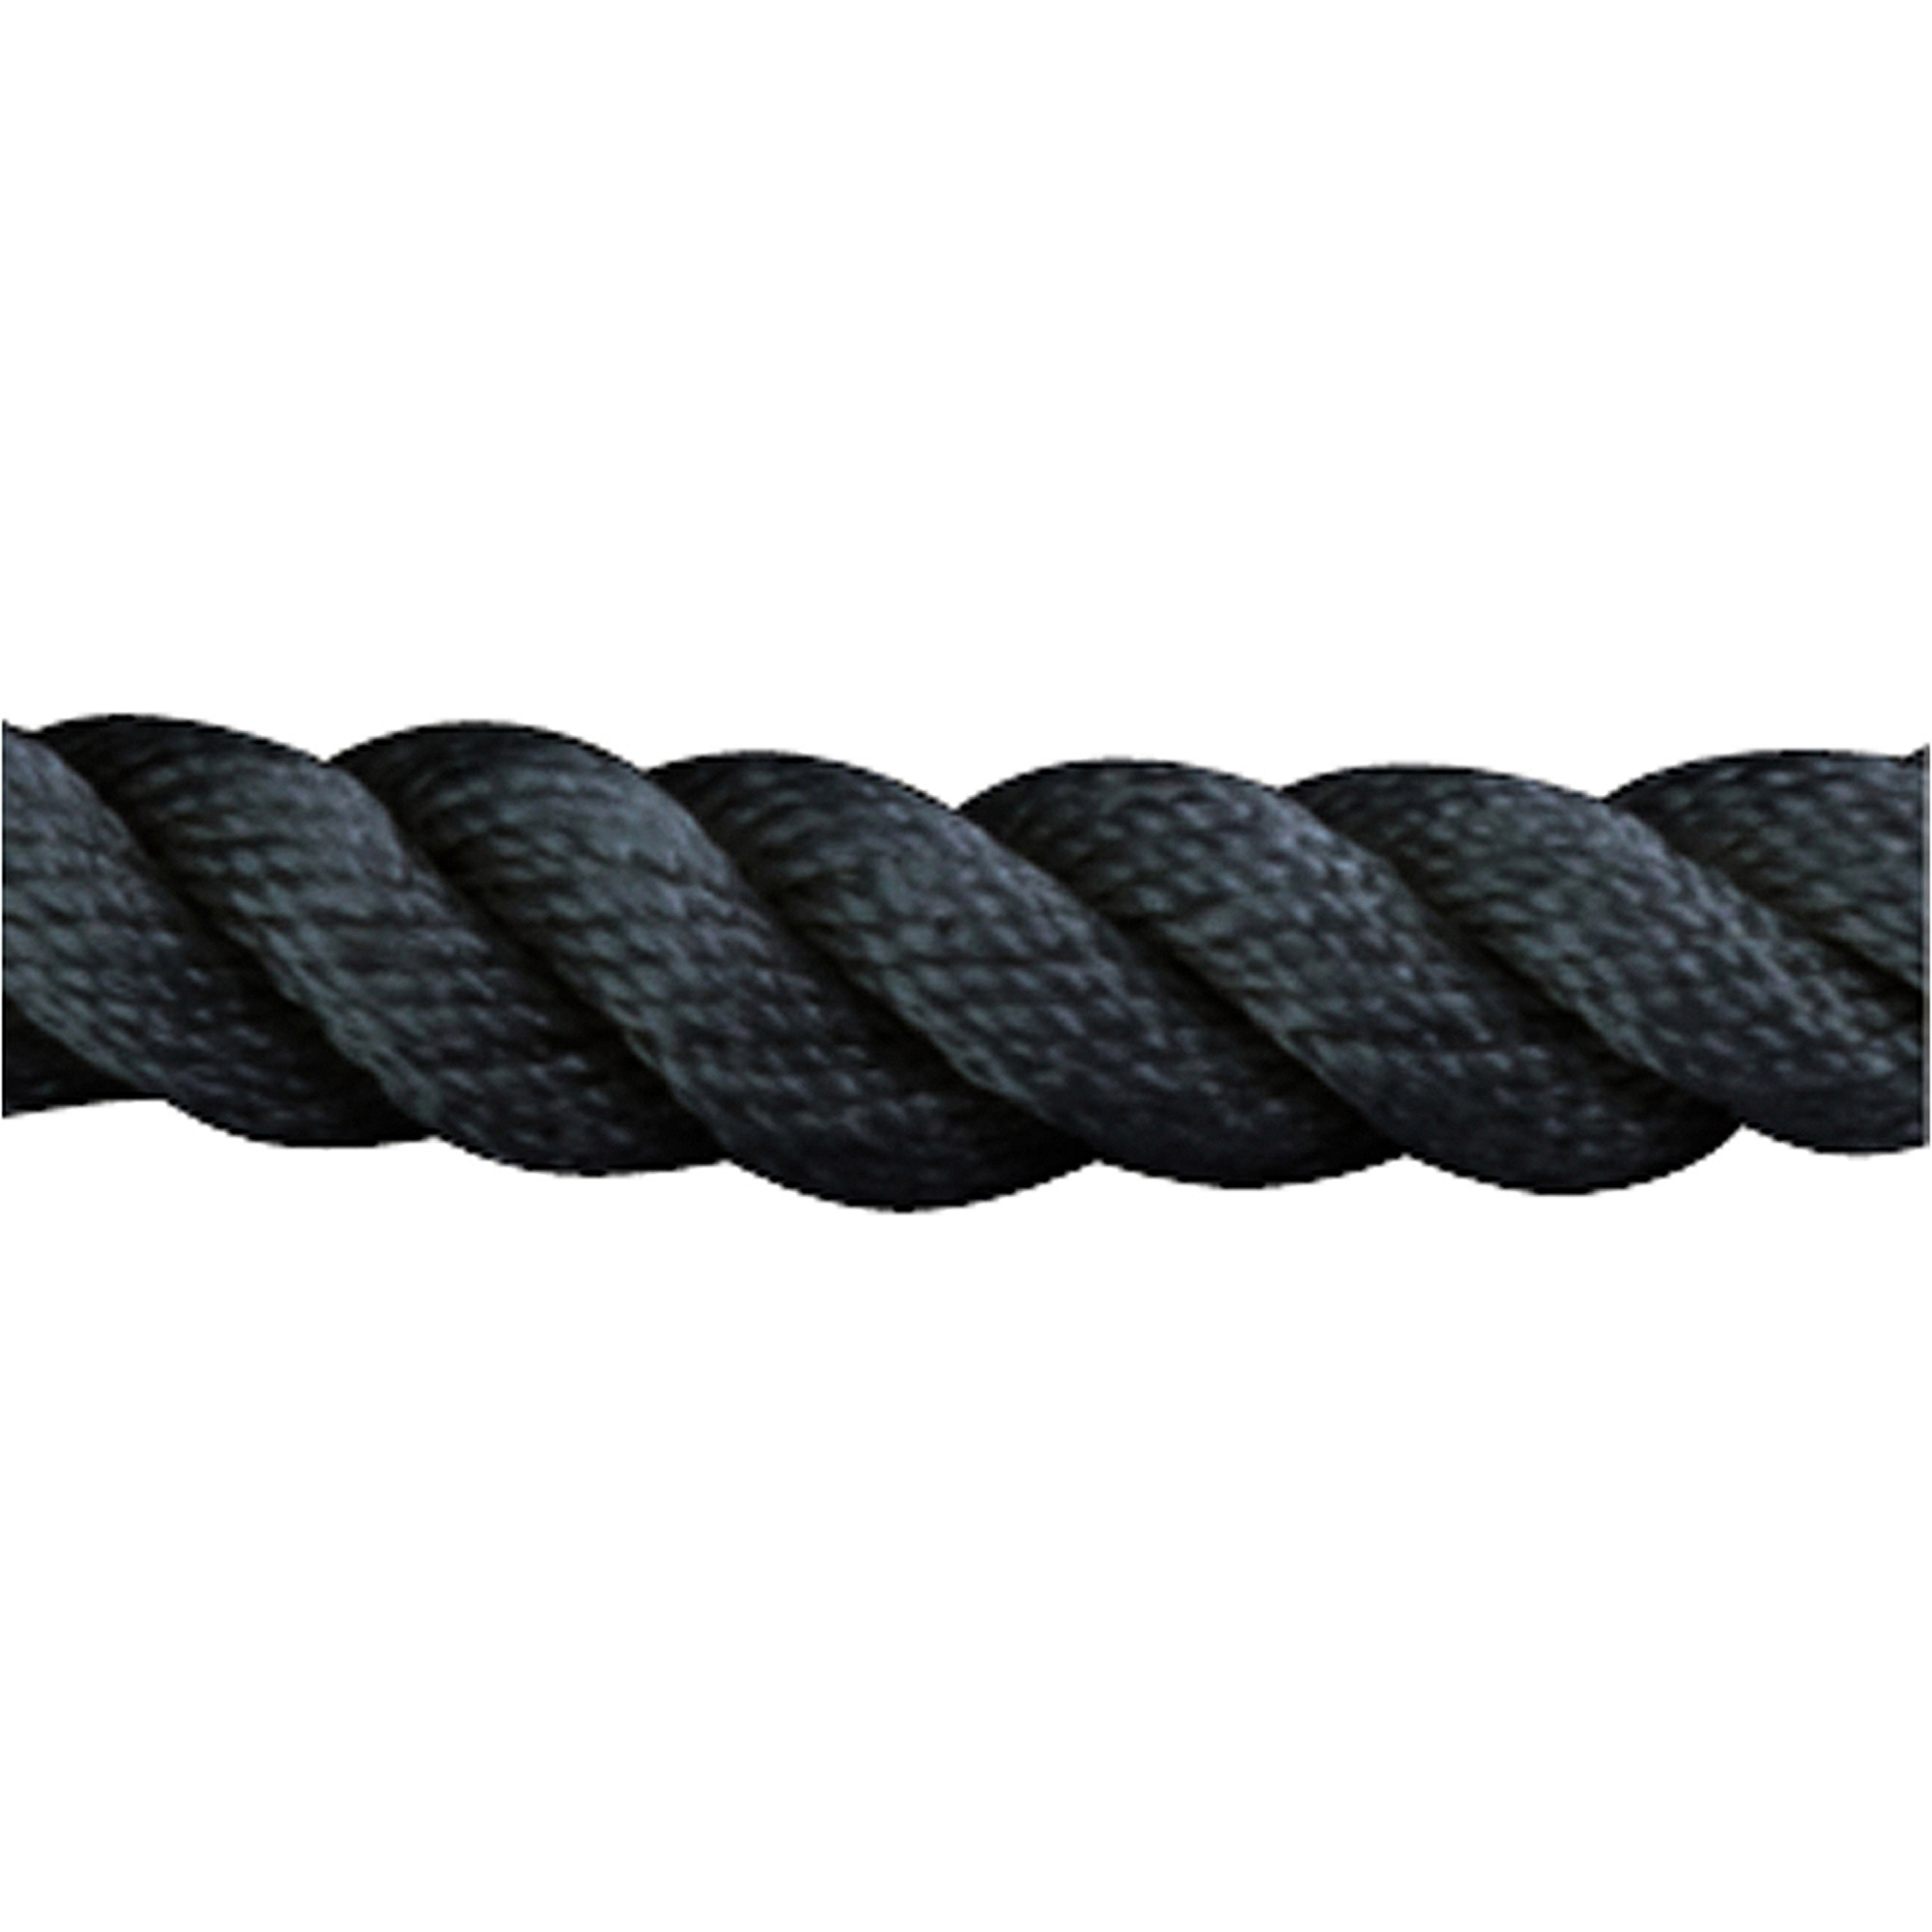 "Sea Dog Dock Line, Twisted Nylon, 3 8"" x 15', Black by Sea Dog"